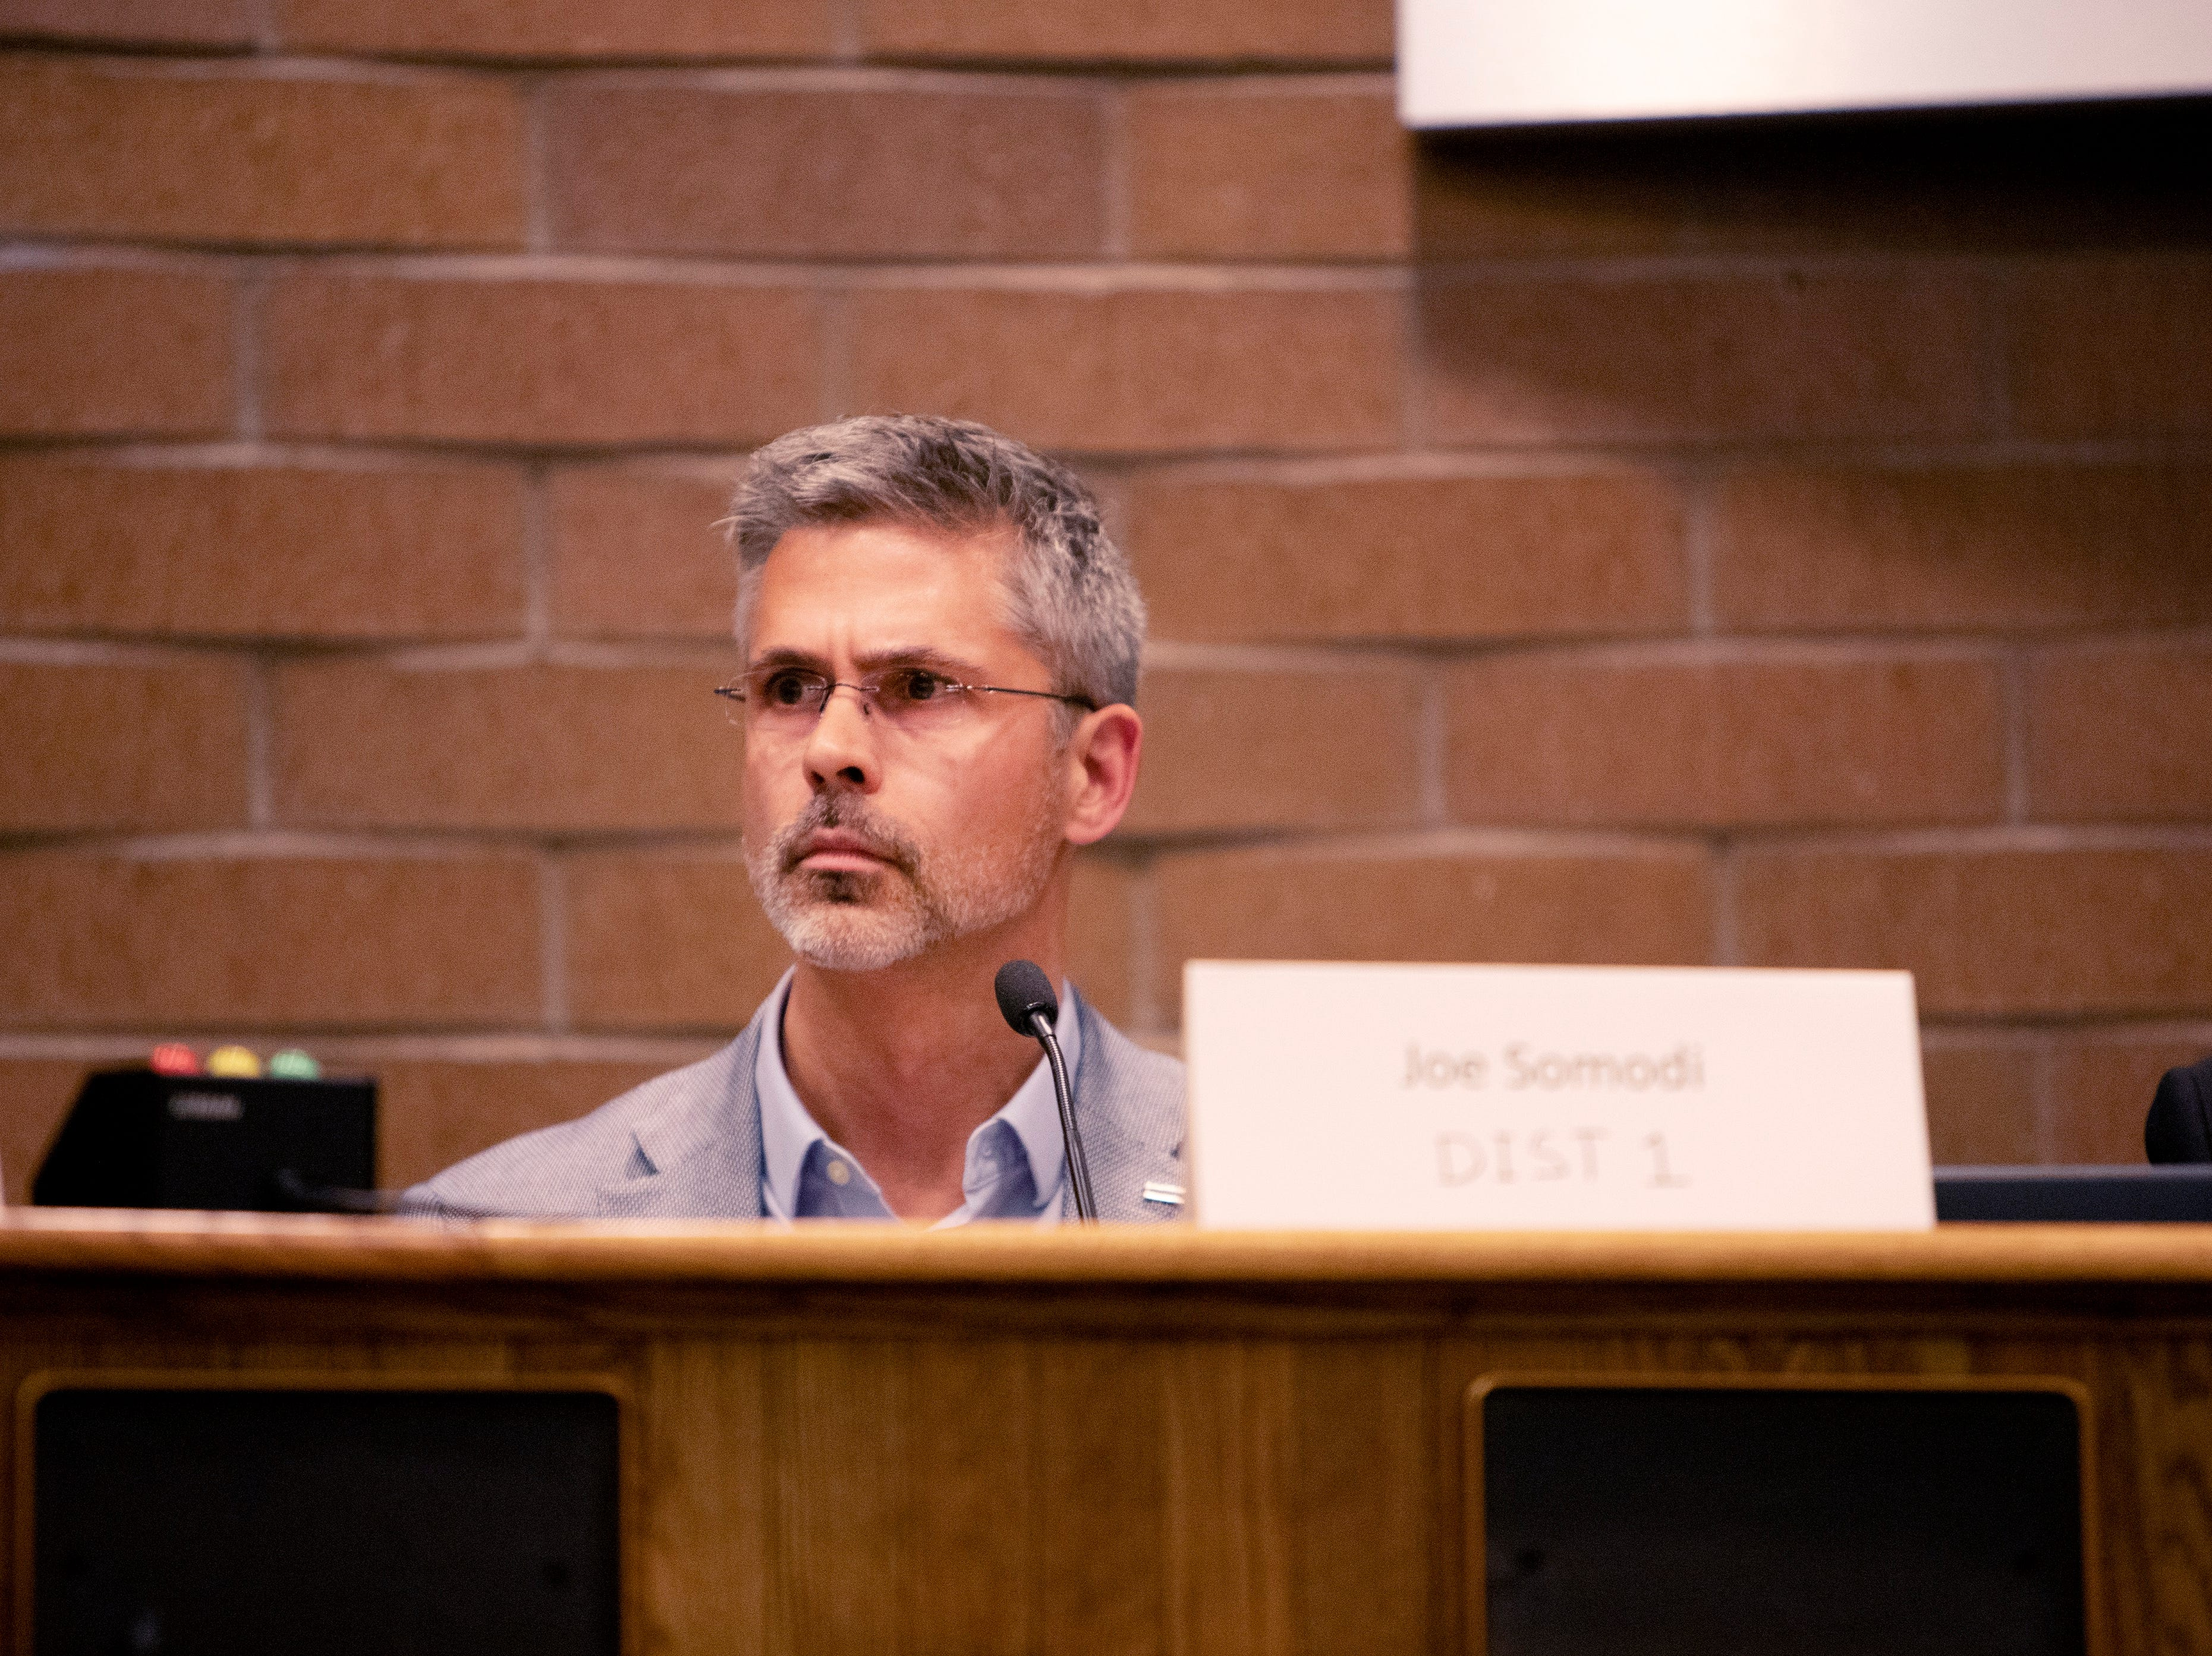 City Council candidate Joe Somodi participates in the candidate forum hosted by The League of  Women Voters of Larimer County at City Hall on March 6.